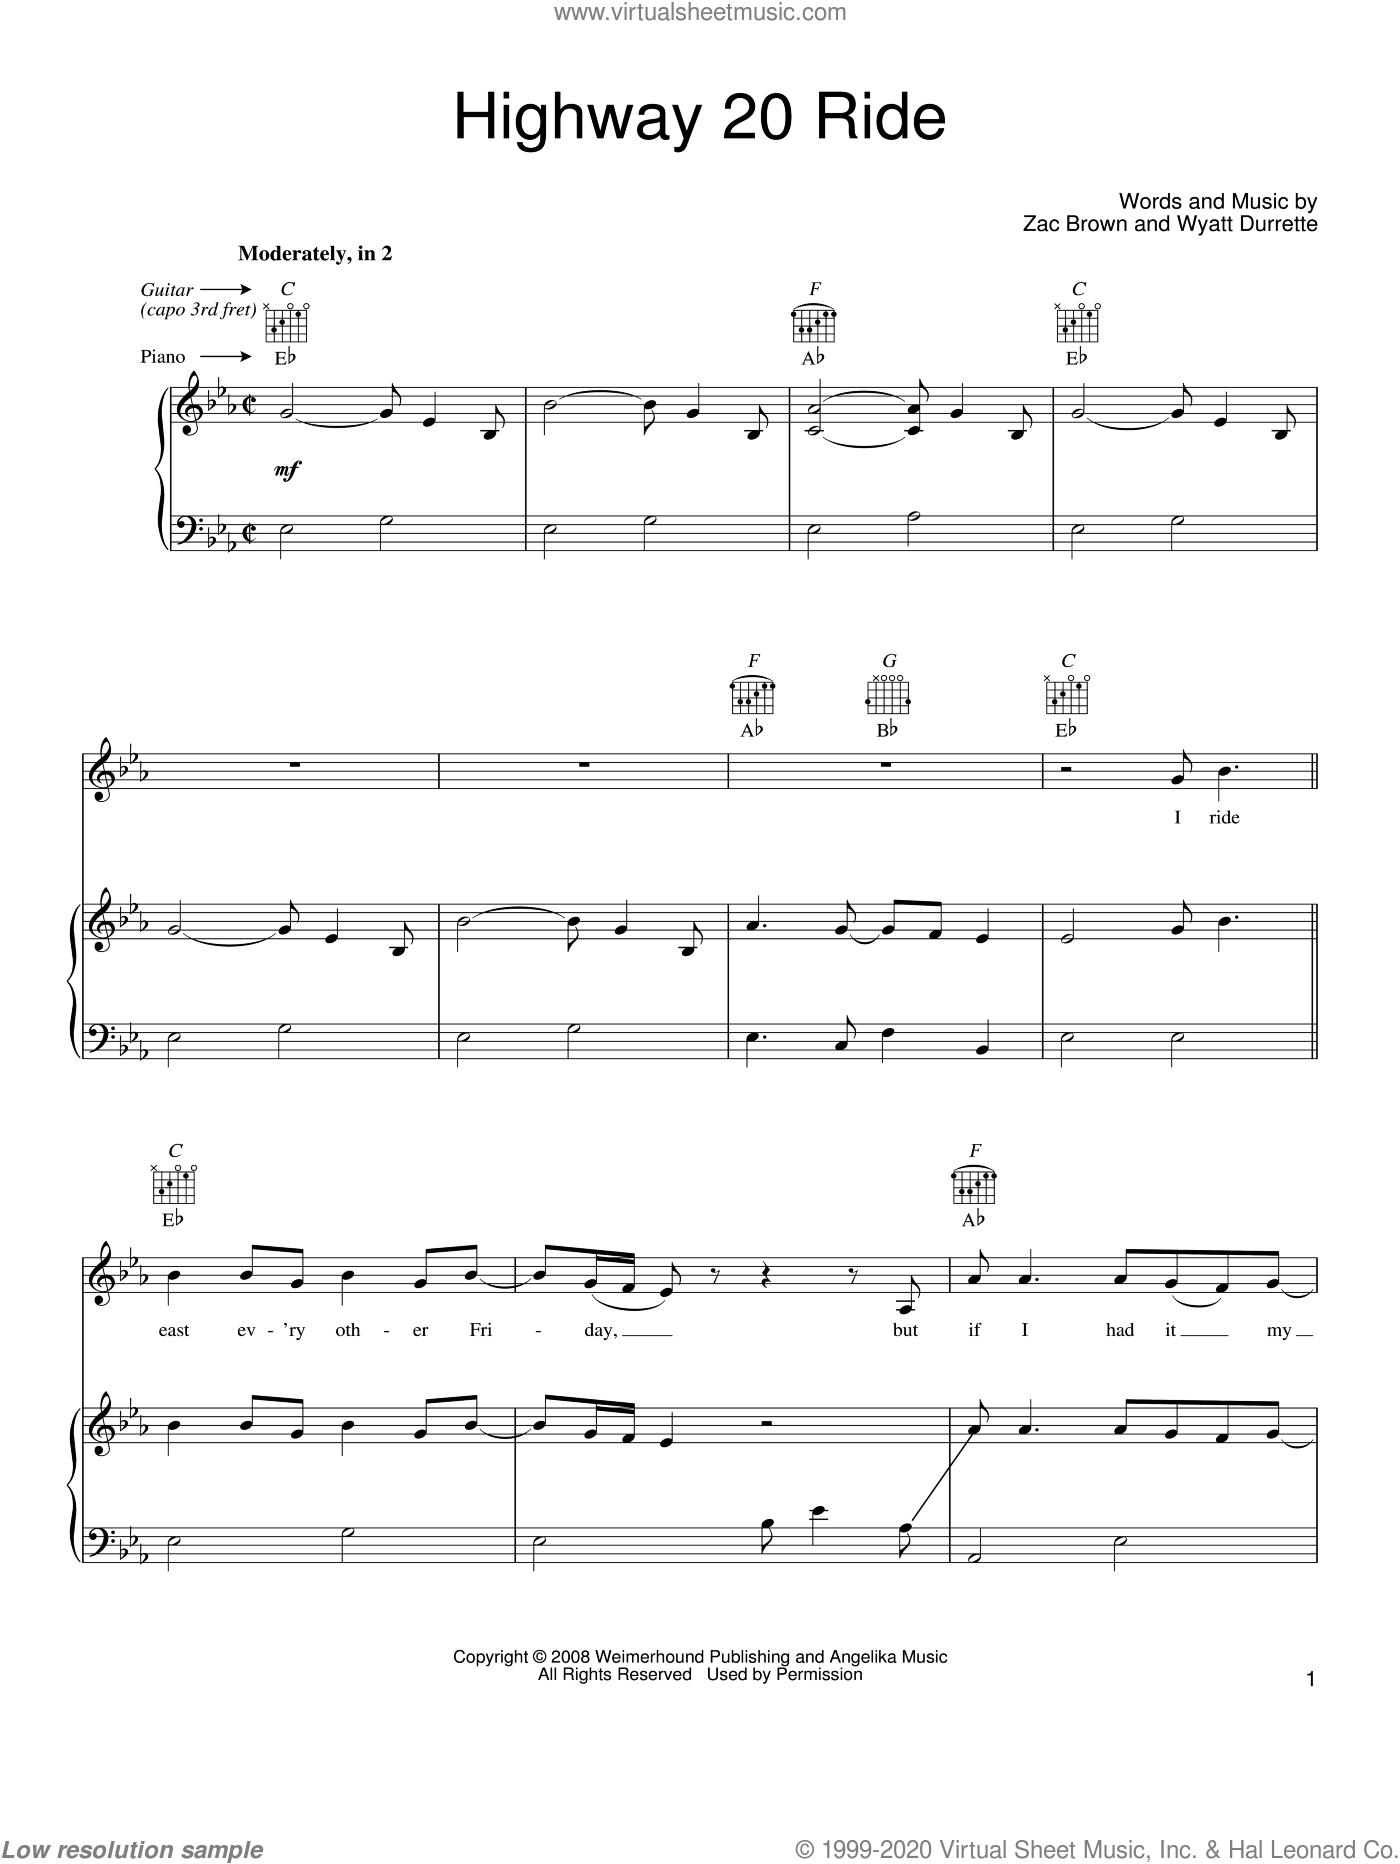 Highway 20 Ride sheet music for voice, piano or guitar by Zac Brown